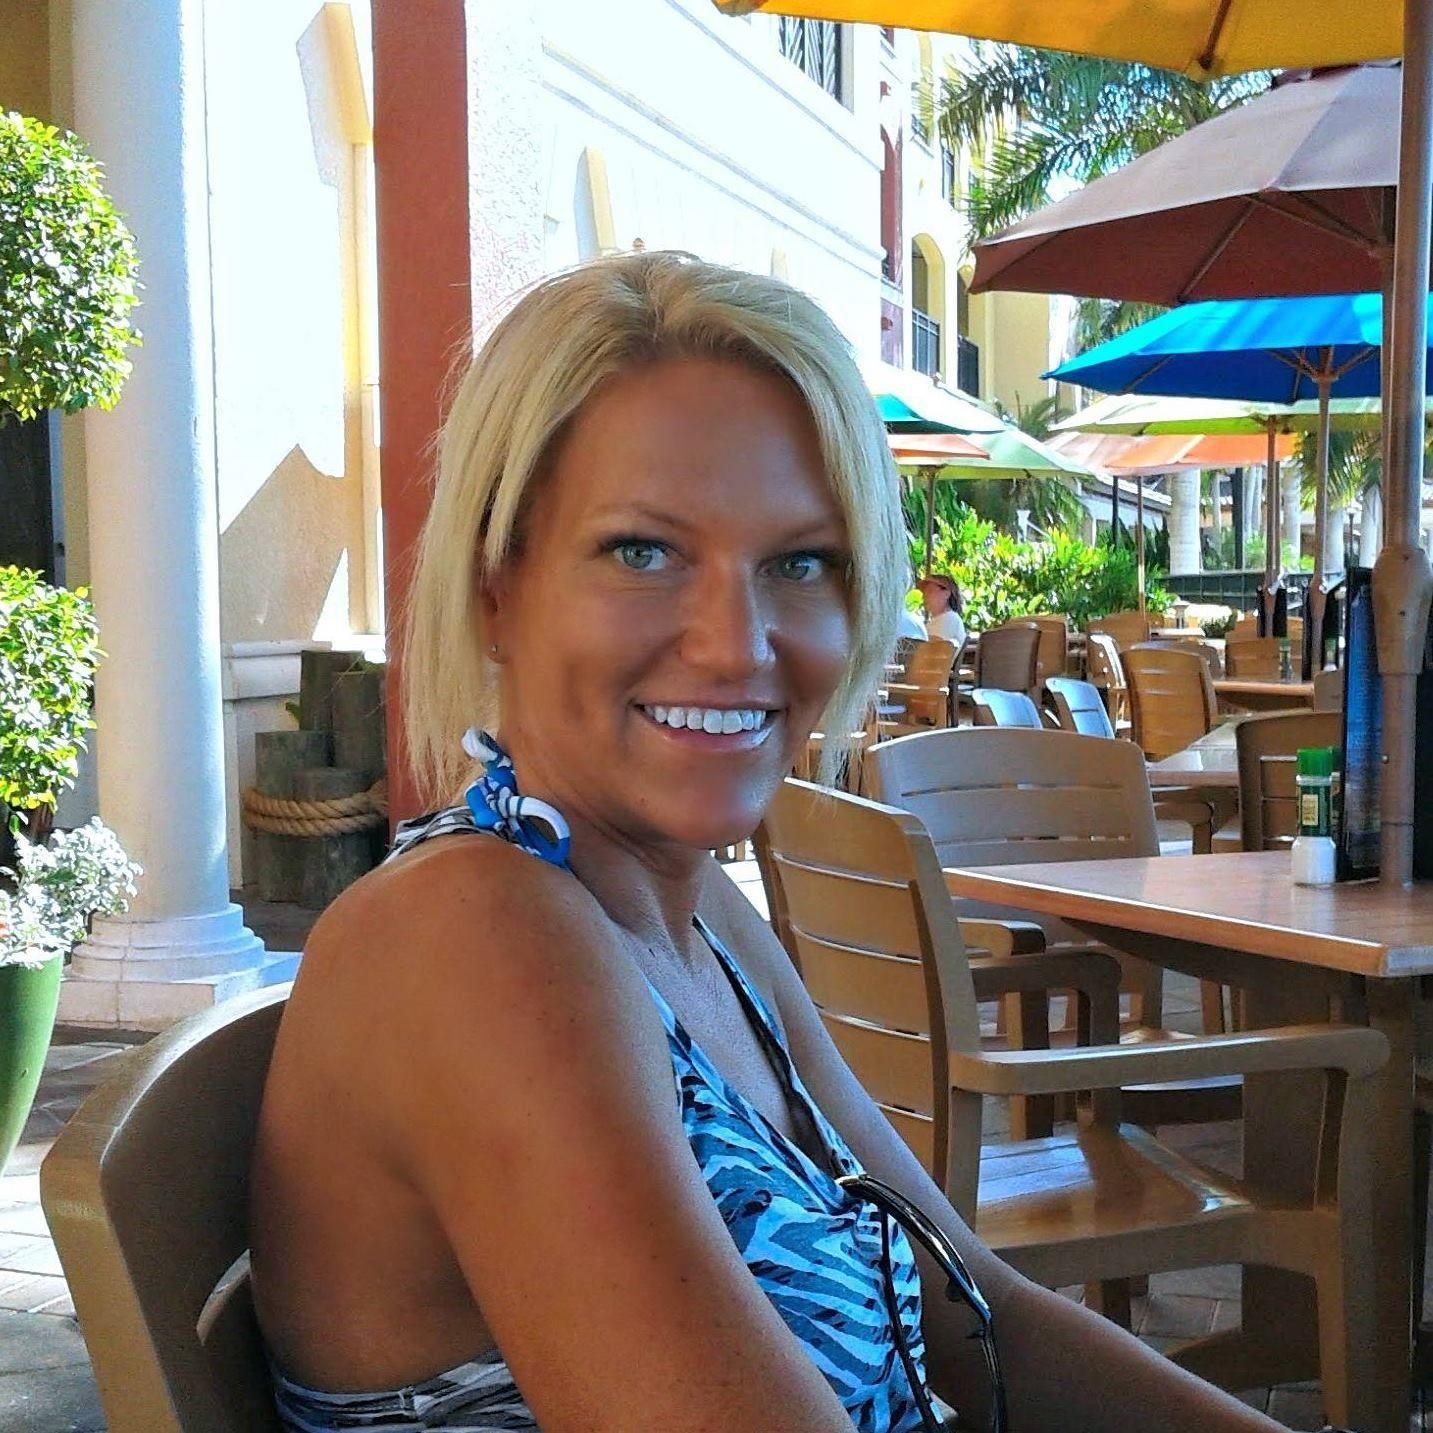 Male to female ratio dating in jacksonville florida